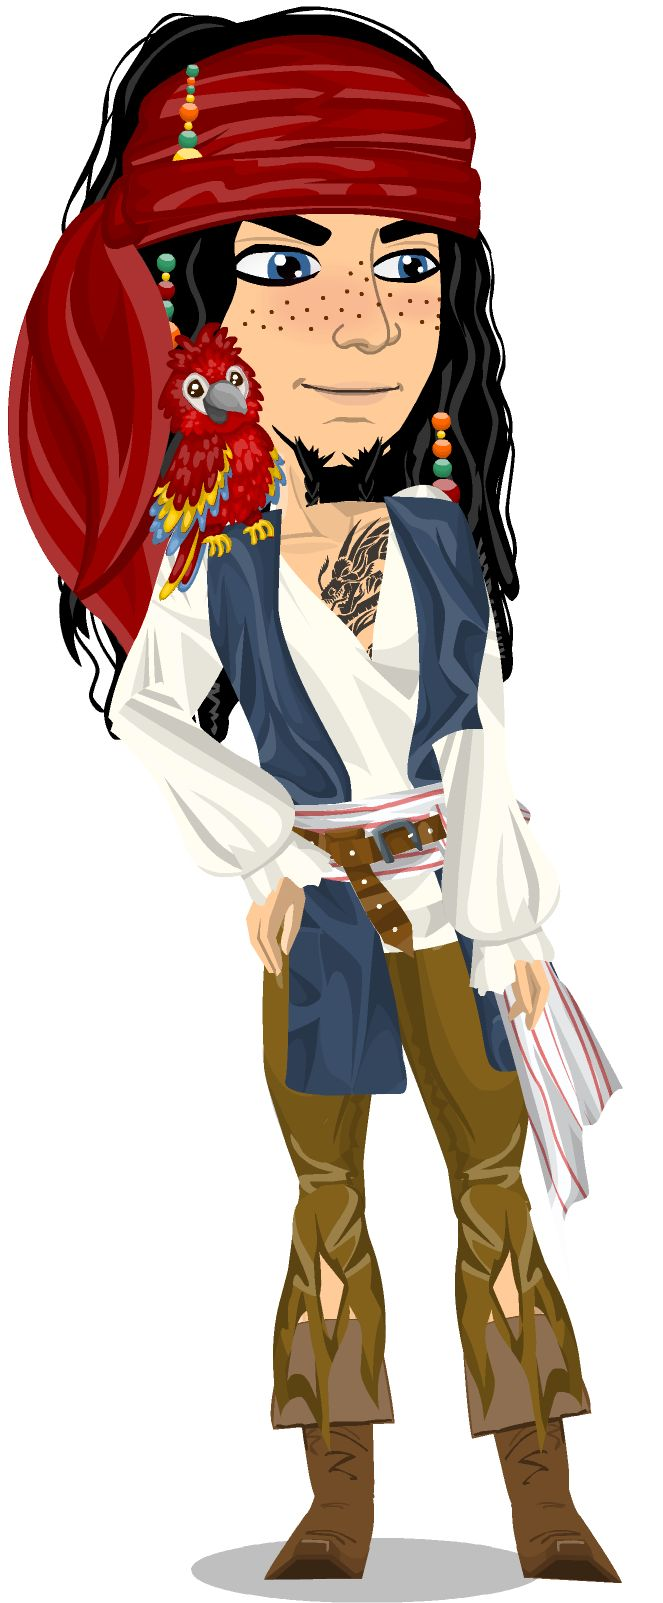 Disney Jack Sparrow Look Msp Fashion By Fight Cancer S Bum Pinterest Disney Sparrows And